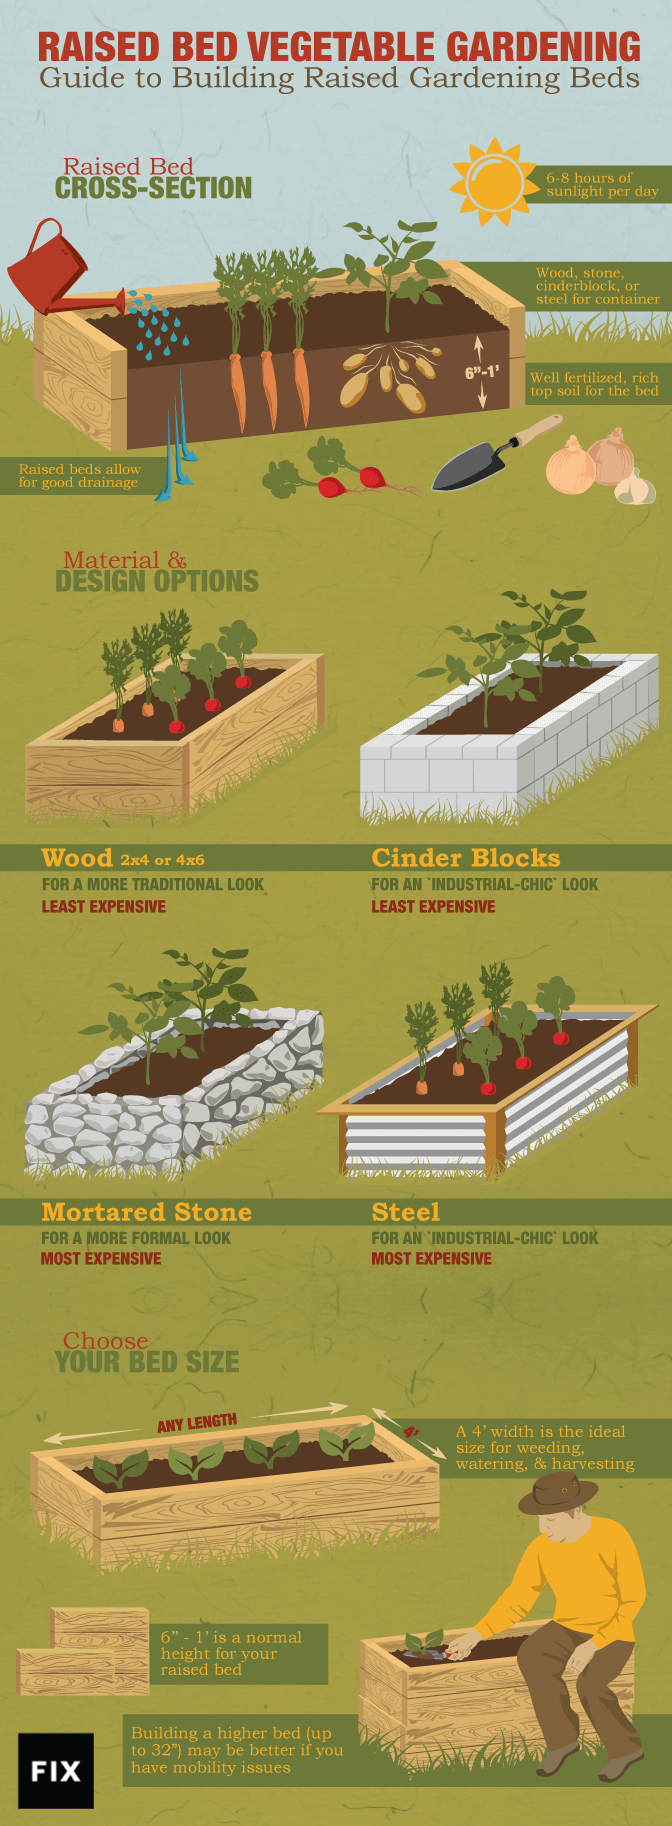 Build Raised Bed Vegetable Gardening | How to Build a Raised Vegetable Garden Bed | 39+ Simple & Cheap Raised Vegetable Garden Bed Ideas - farmfoodfamily.com